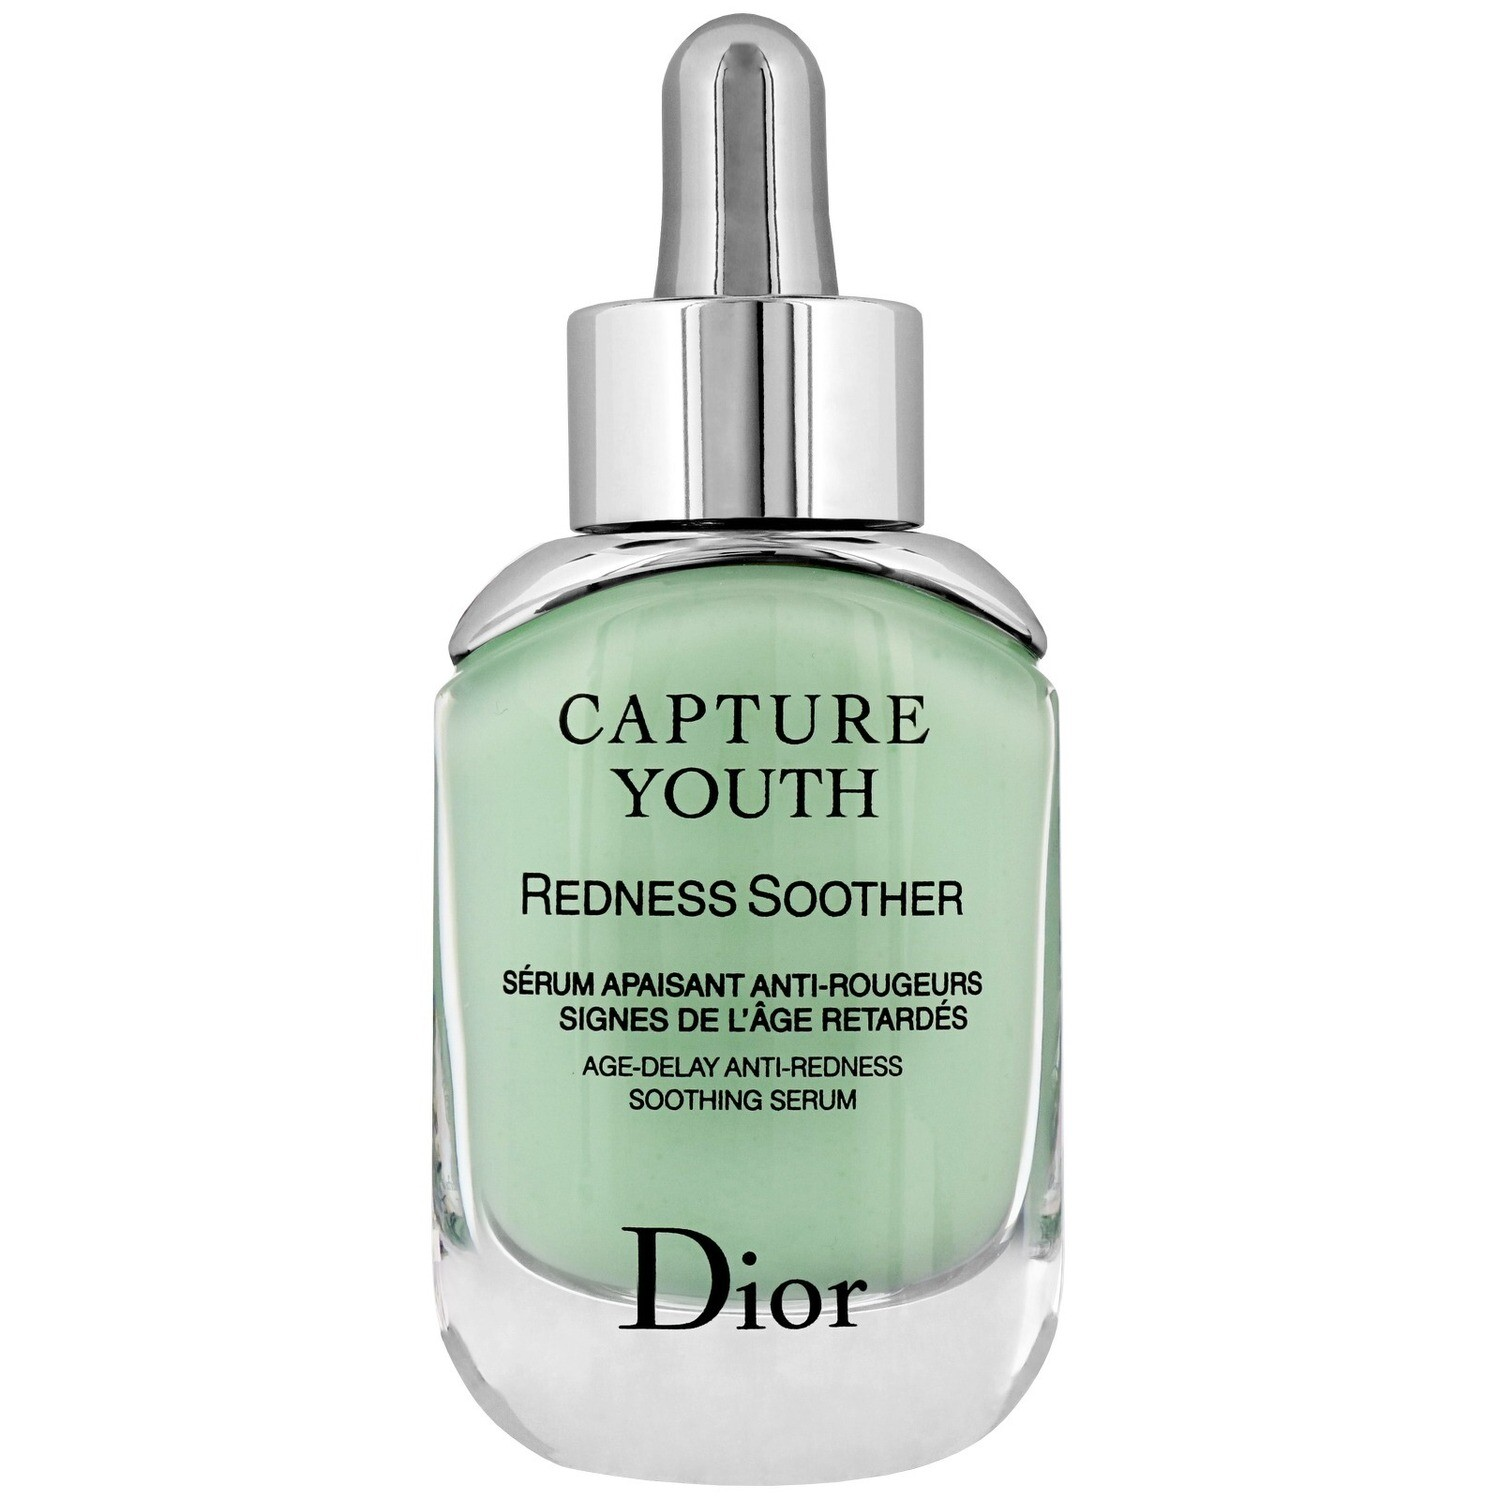 CAPTURE YOUTH REDNESS SOOTHER SERUM APA